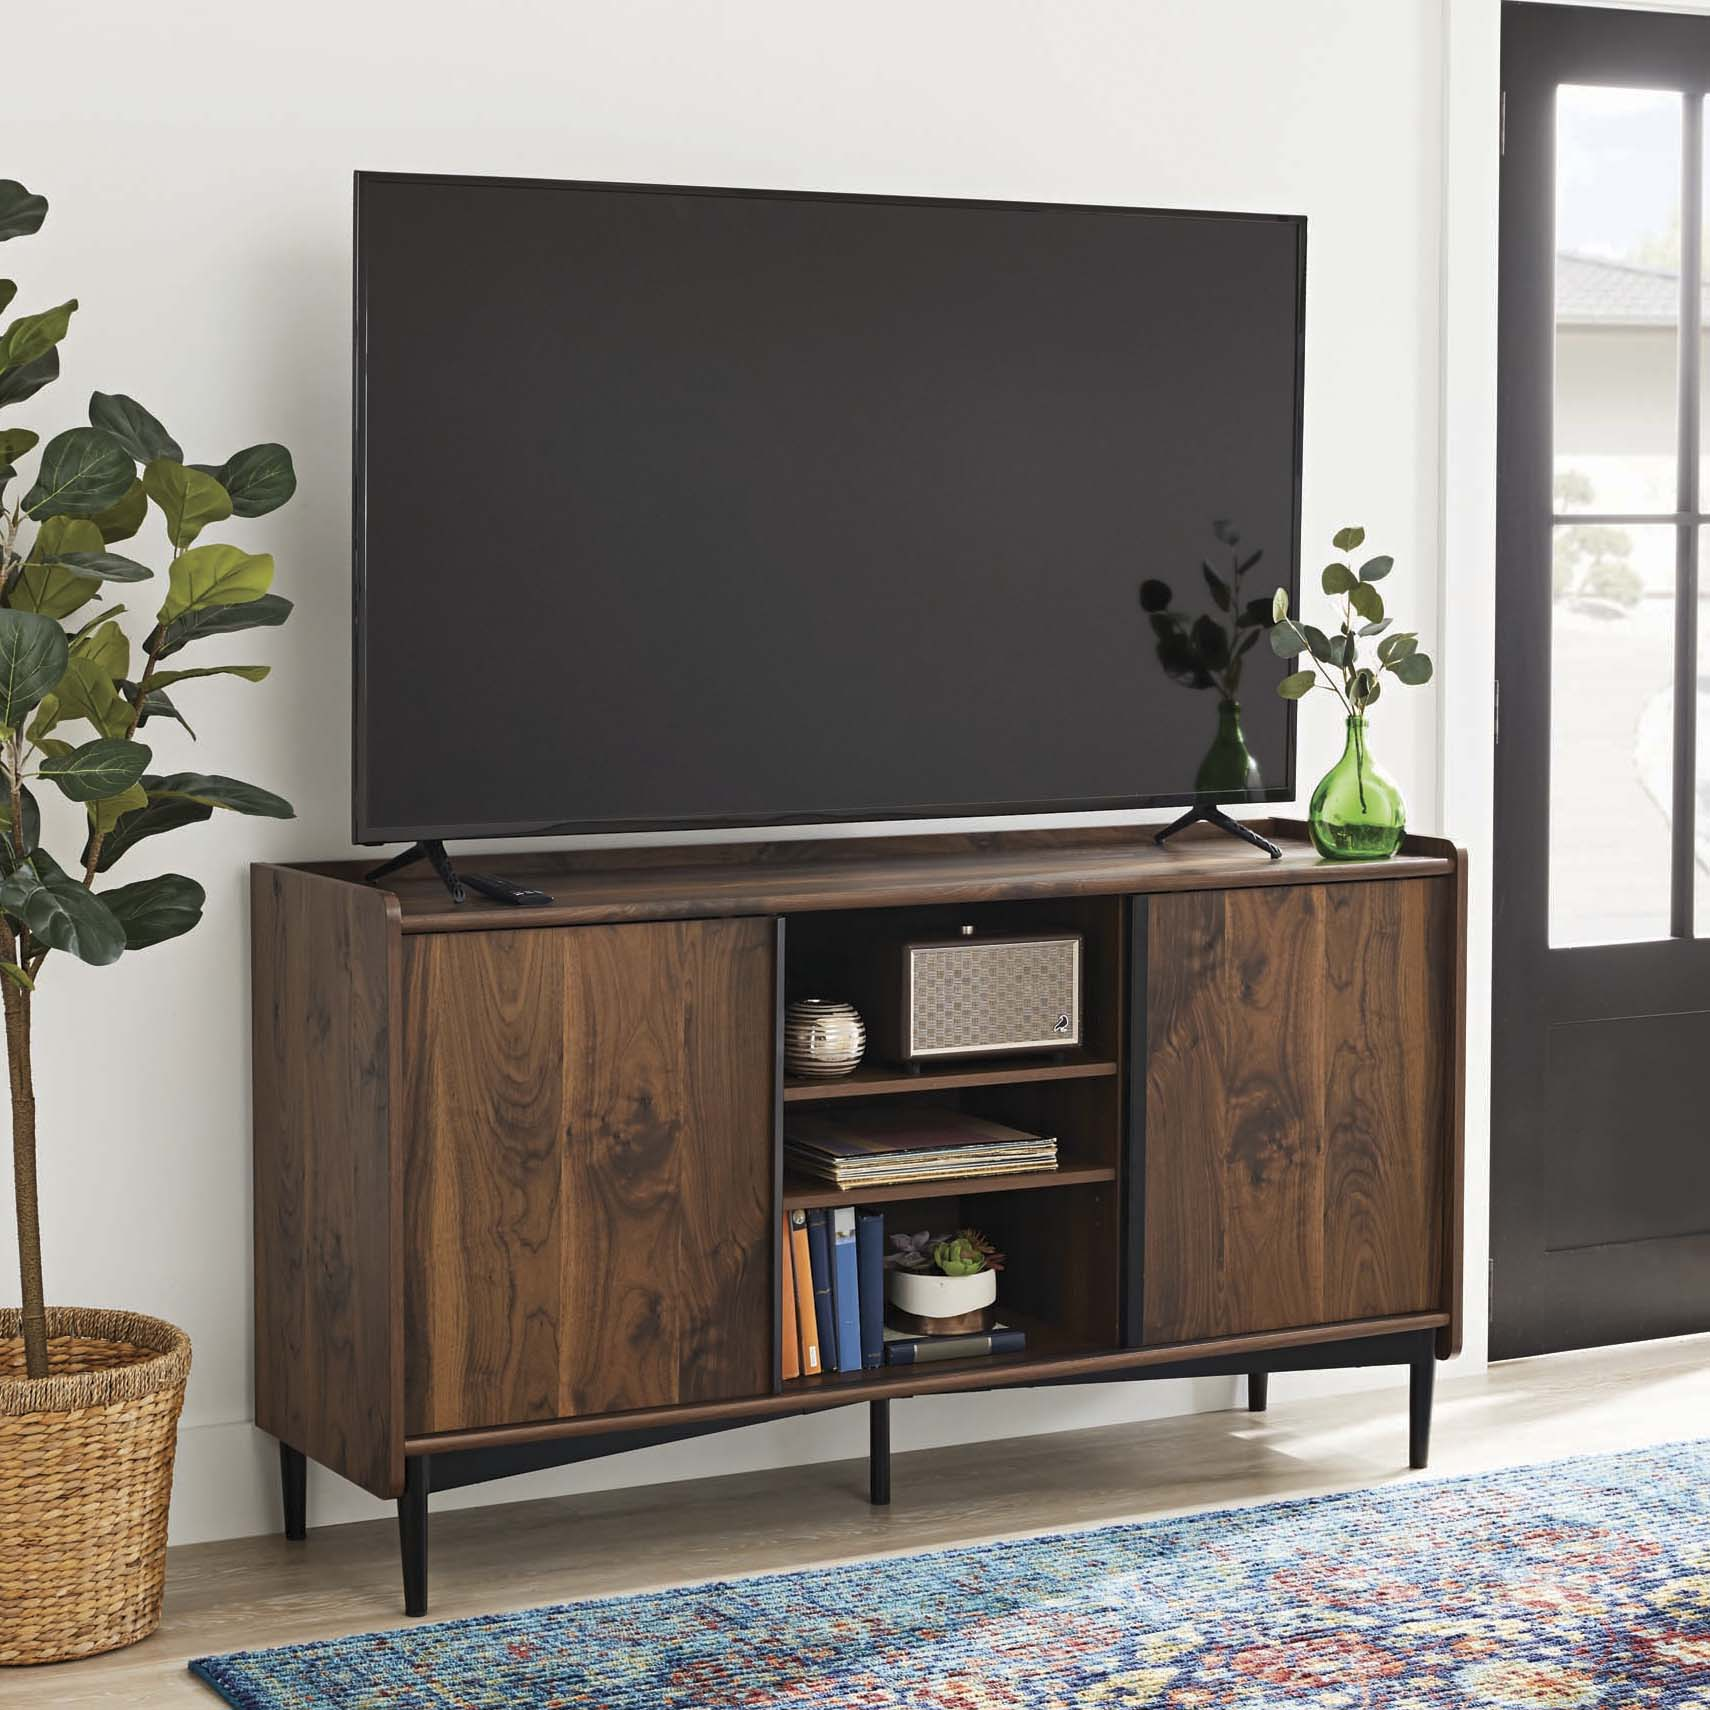 Better Homes Gardens Montclair Tv Stand Storage Console For Tvs Up To 65 Vintage Walnut Finish Walmart Com Walmart Com